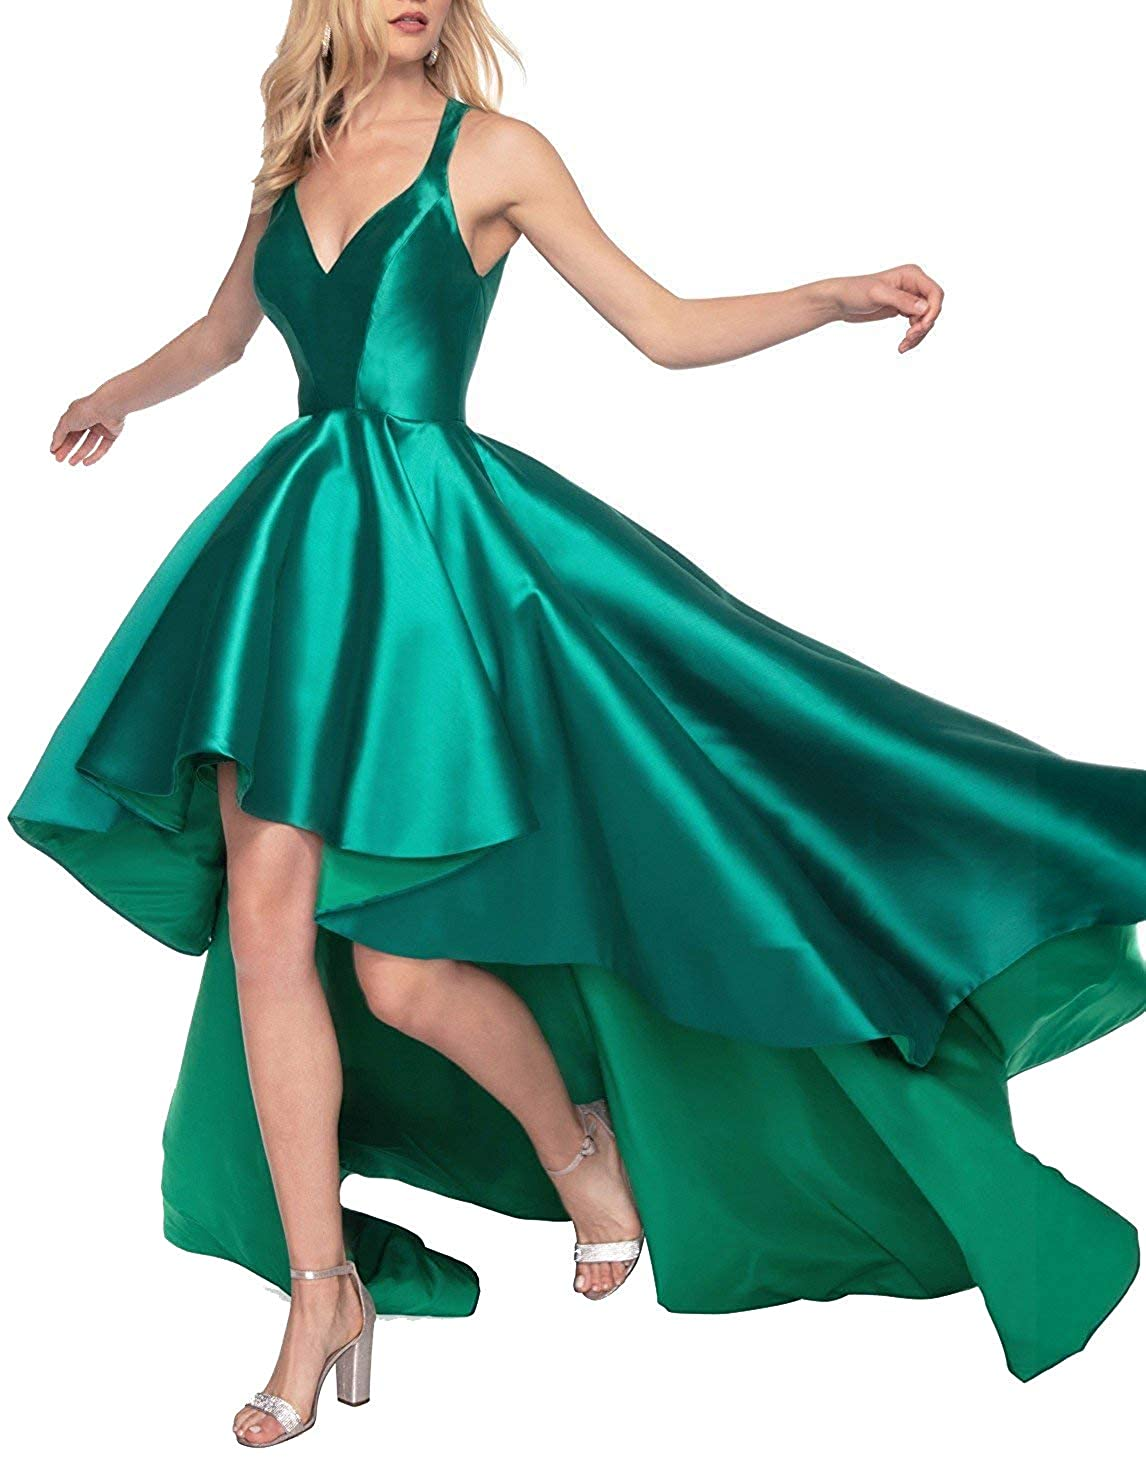 Dark Green V Neck Prom Gowns High Low Satin 2019 Open Back Formal Evening Dreses for Women